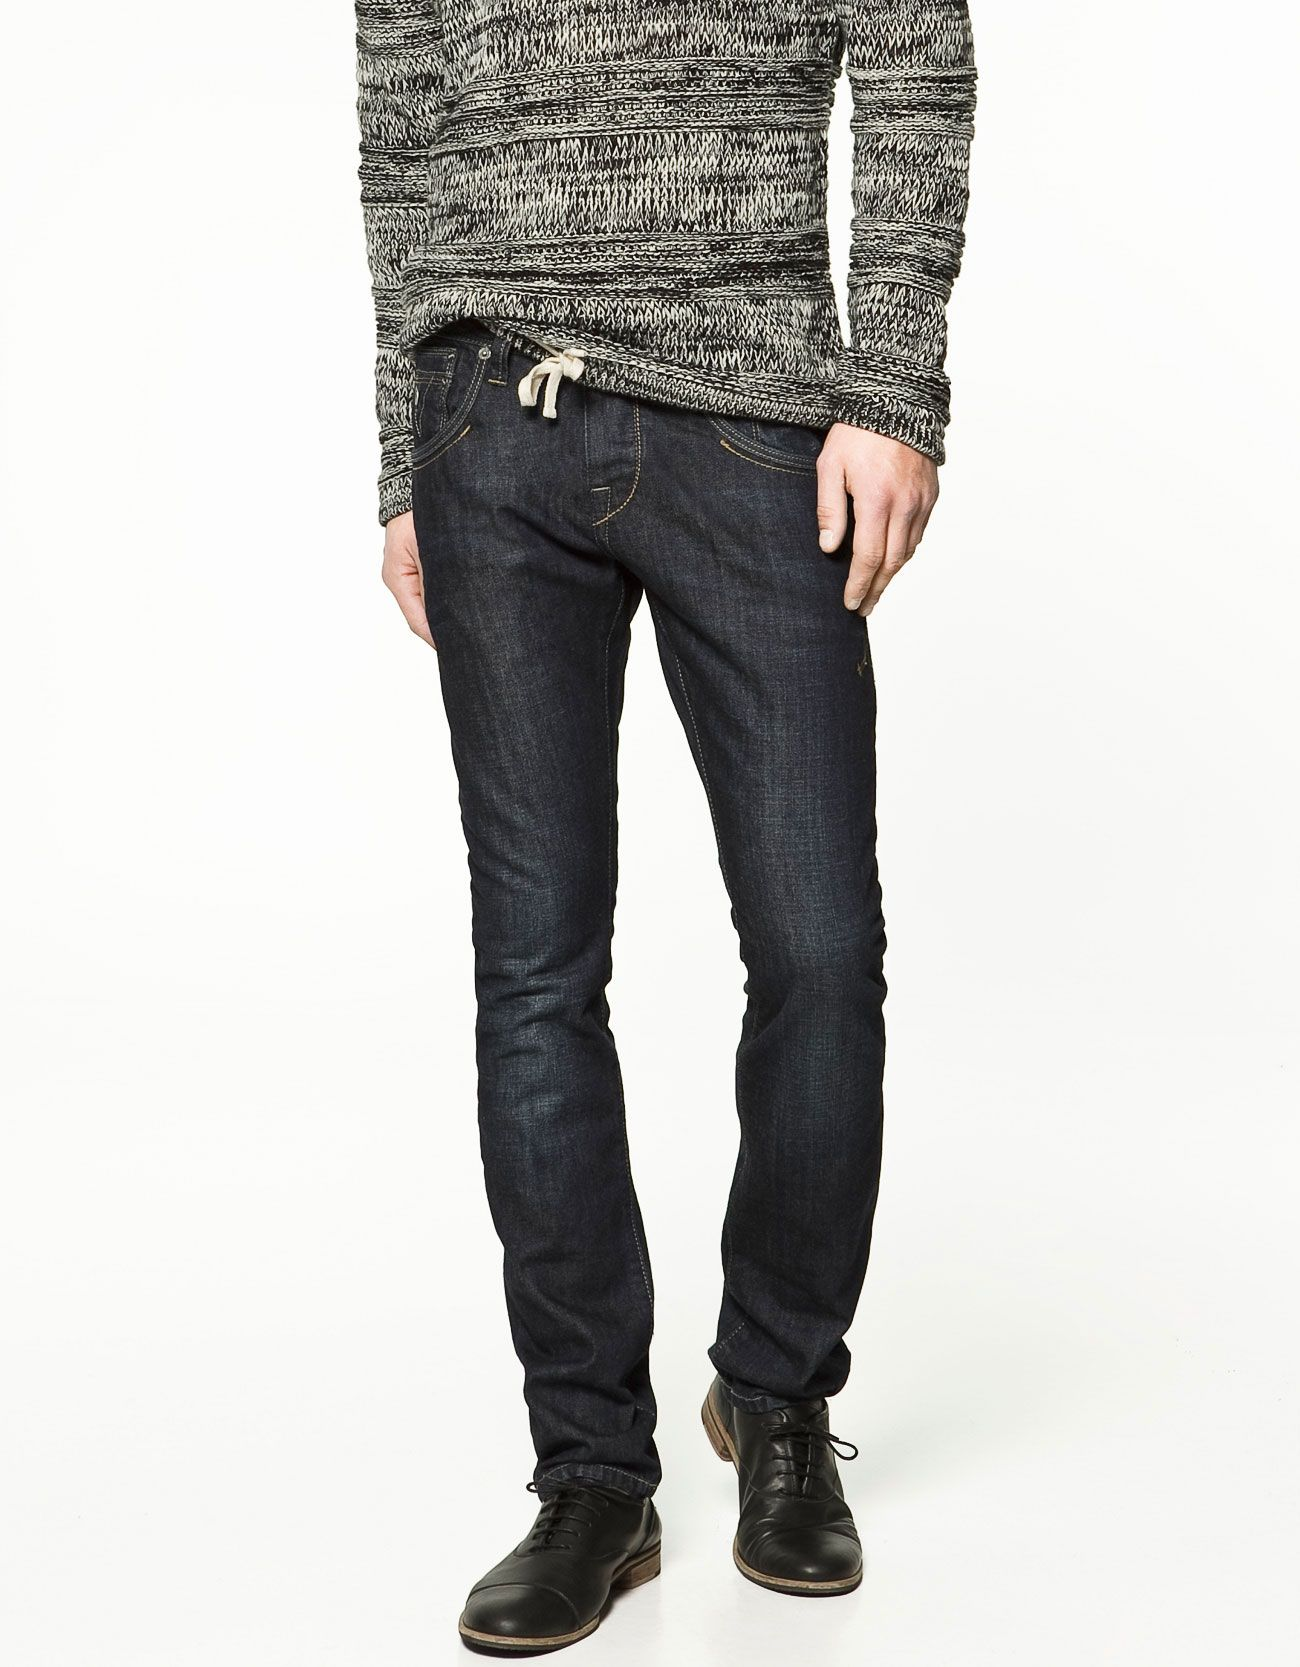 900c84a773 JEANS WITH TOPSTITCHED COIN POCKET - MAN - ZARA s s 2012